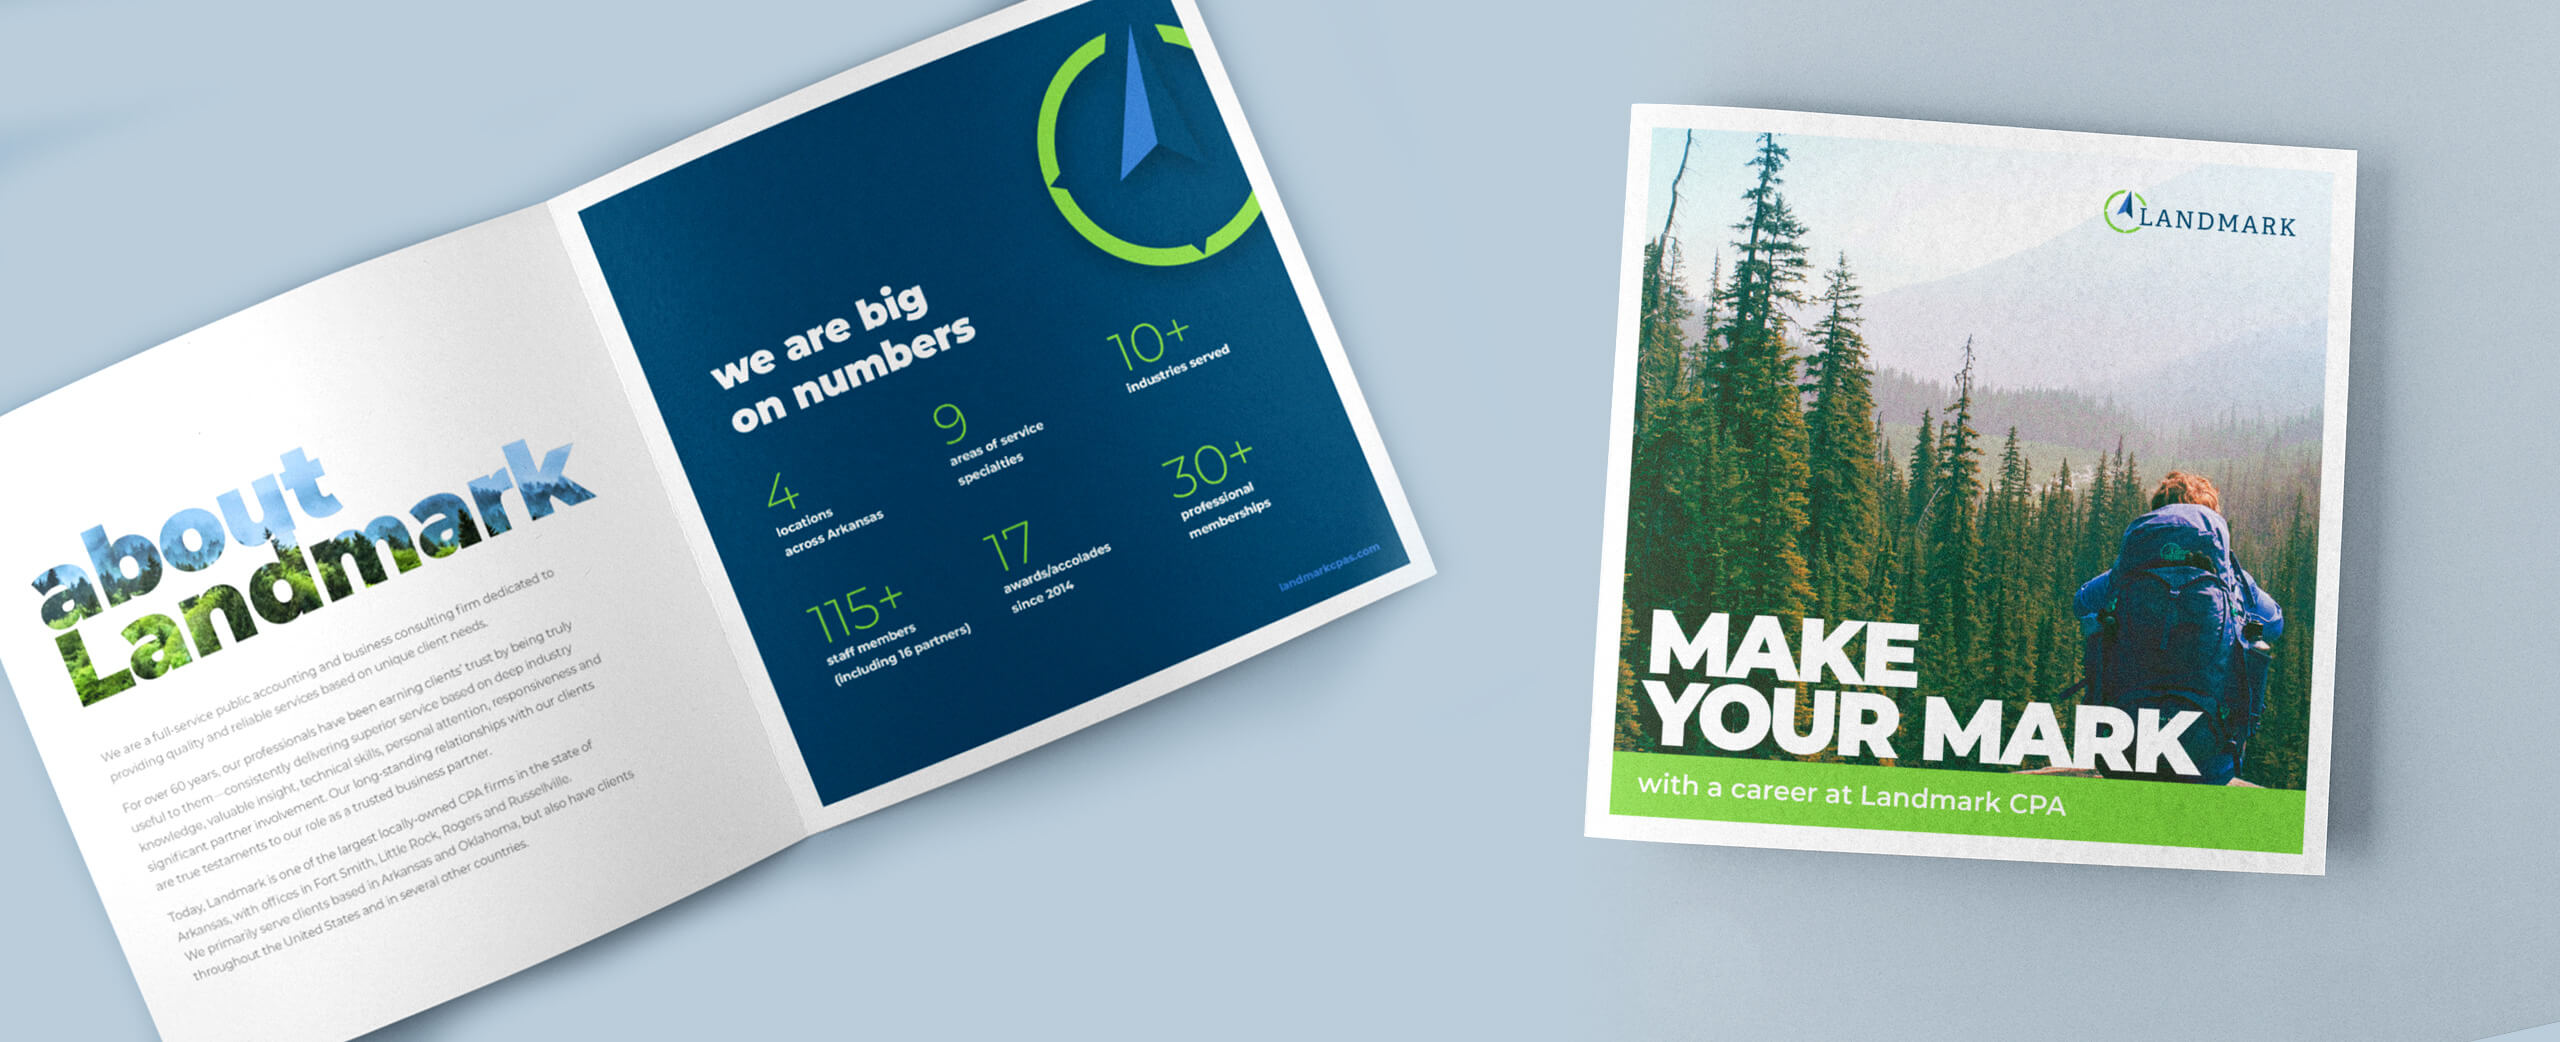 dmg-marketing-collateral-landmark-booklet